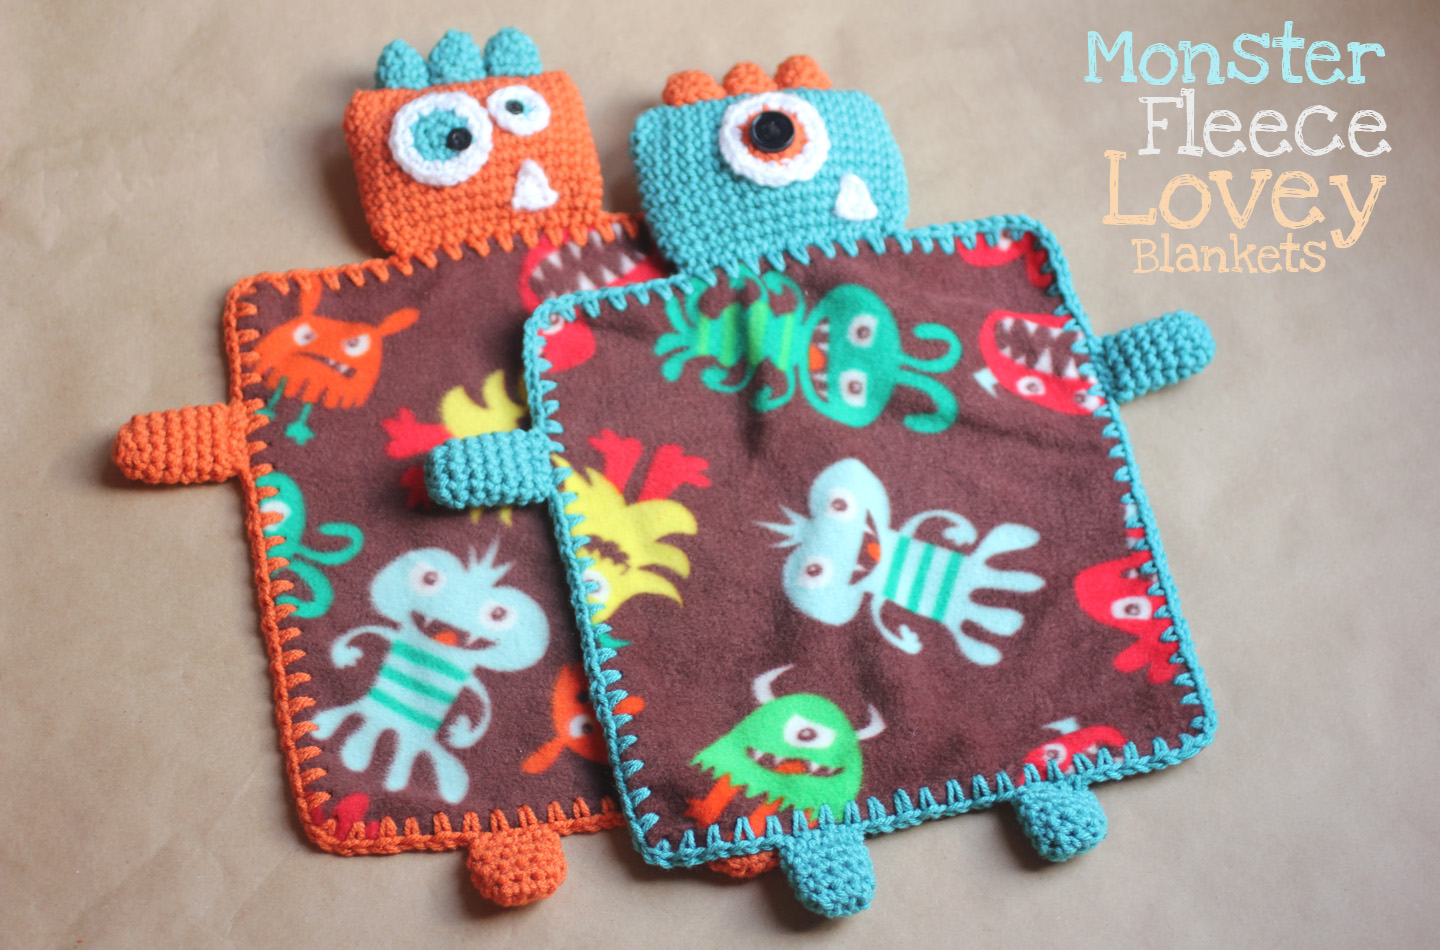 Monster Fleece Lovey Blankets - Repeat Crafter Me